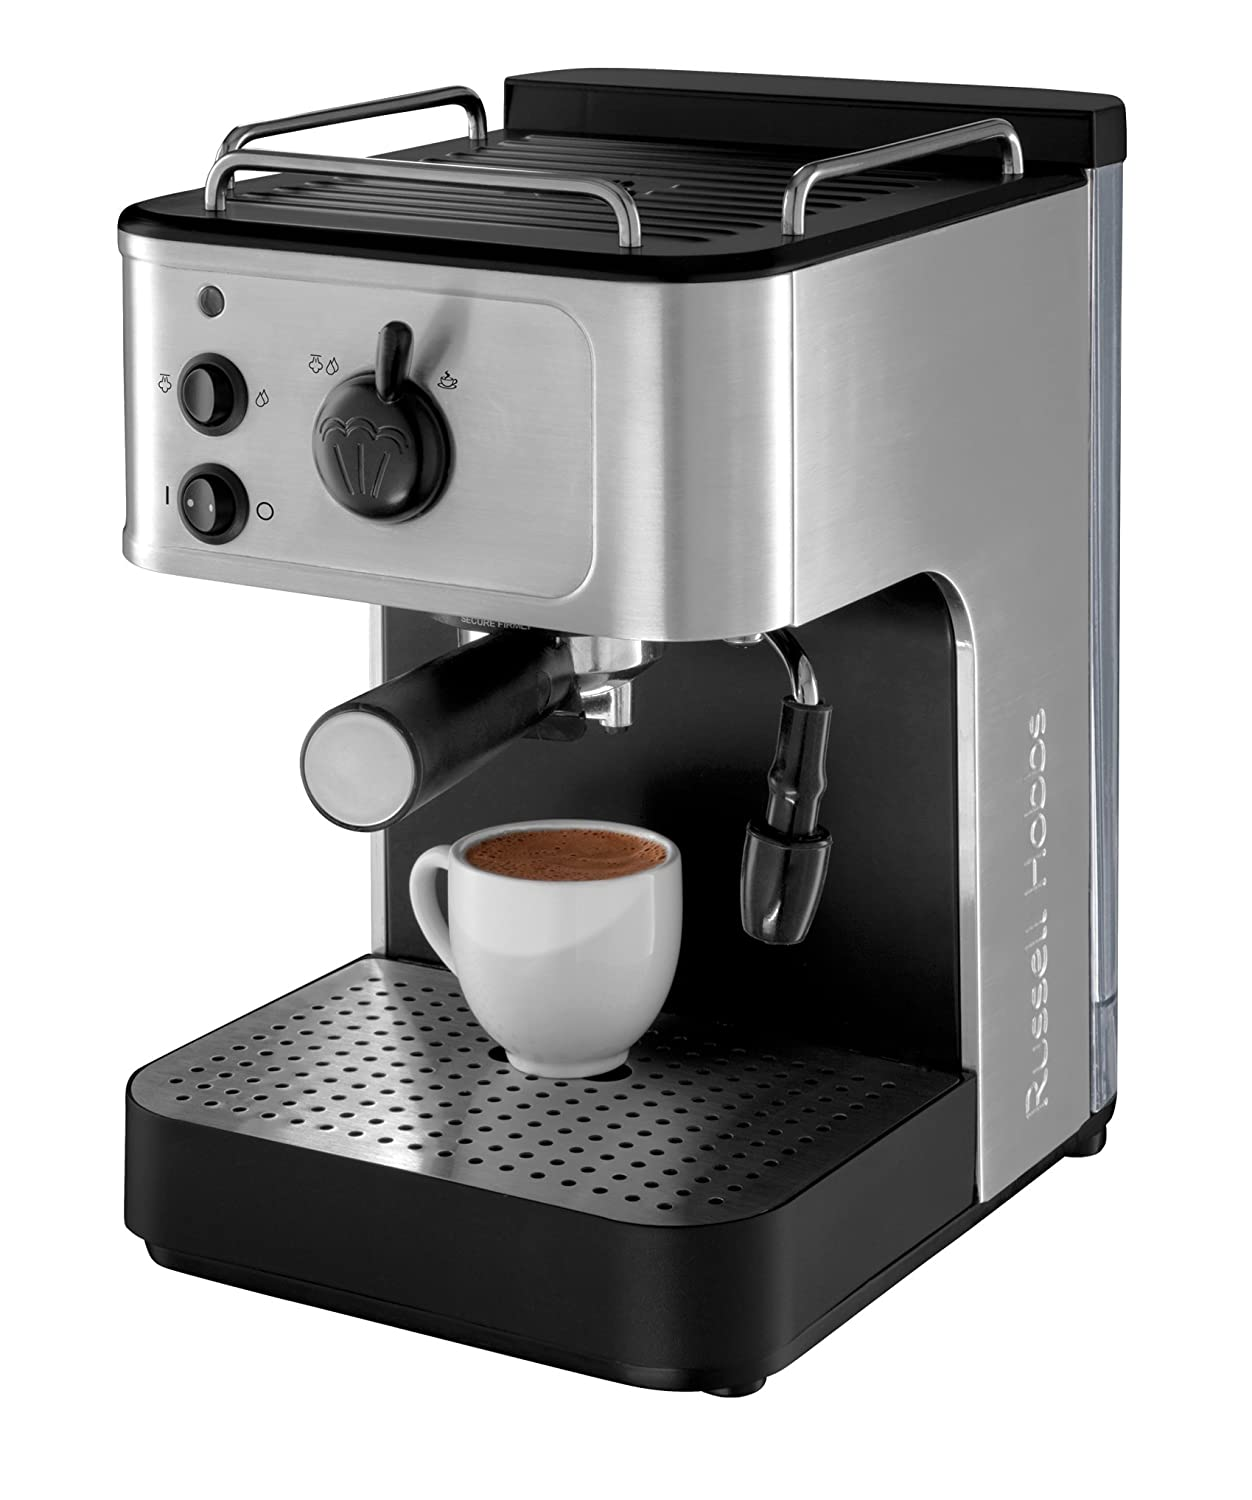 Russell Hobbs 18623 Espresso Coffee Maker Espresso Cappuccino Machines Kitchen eBay